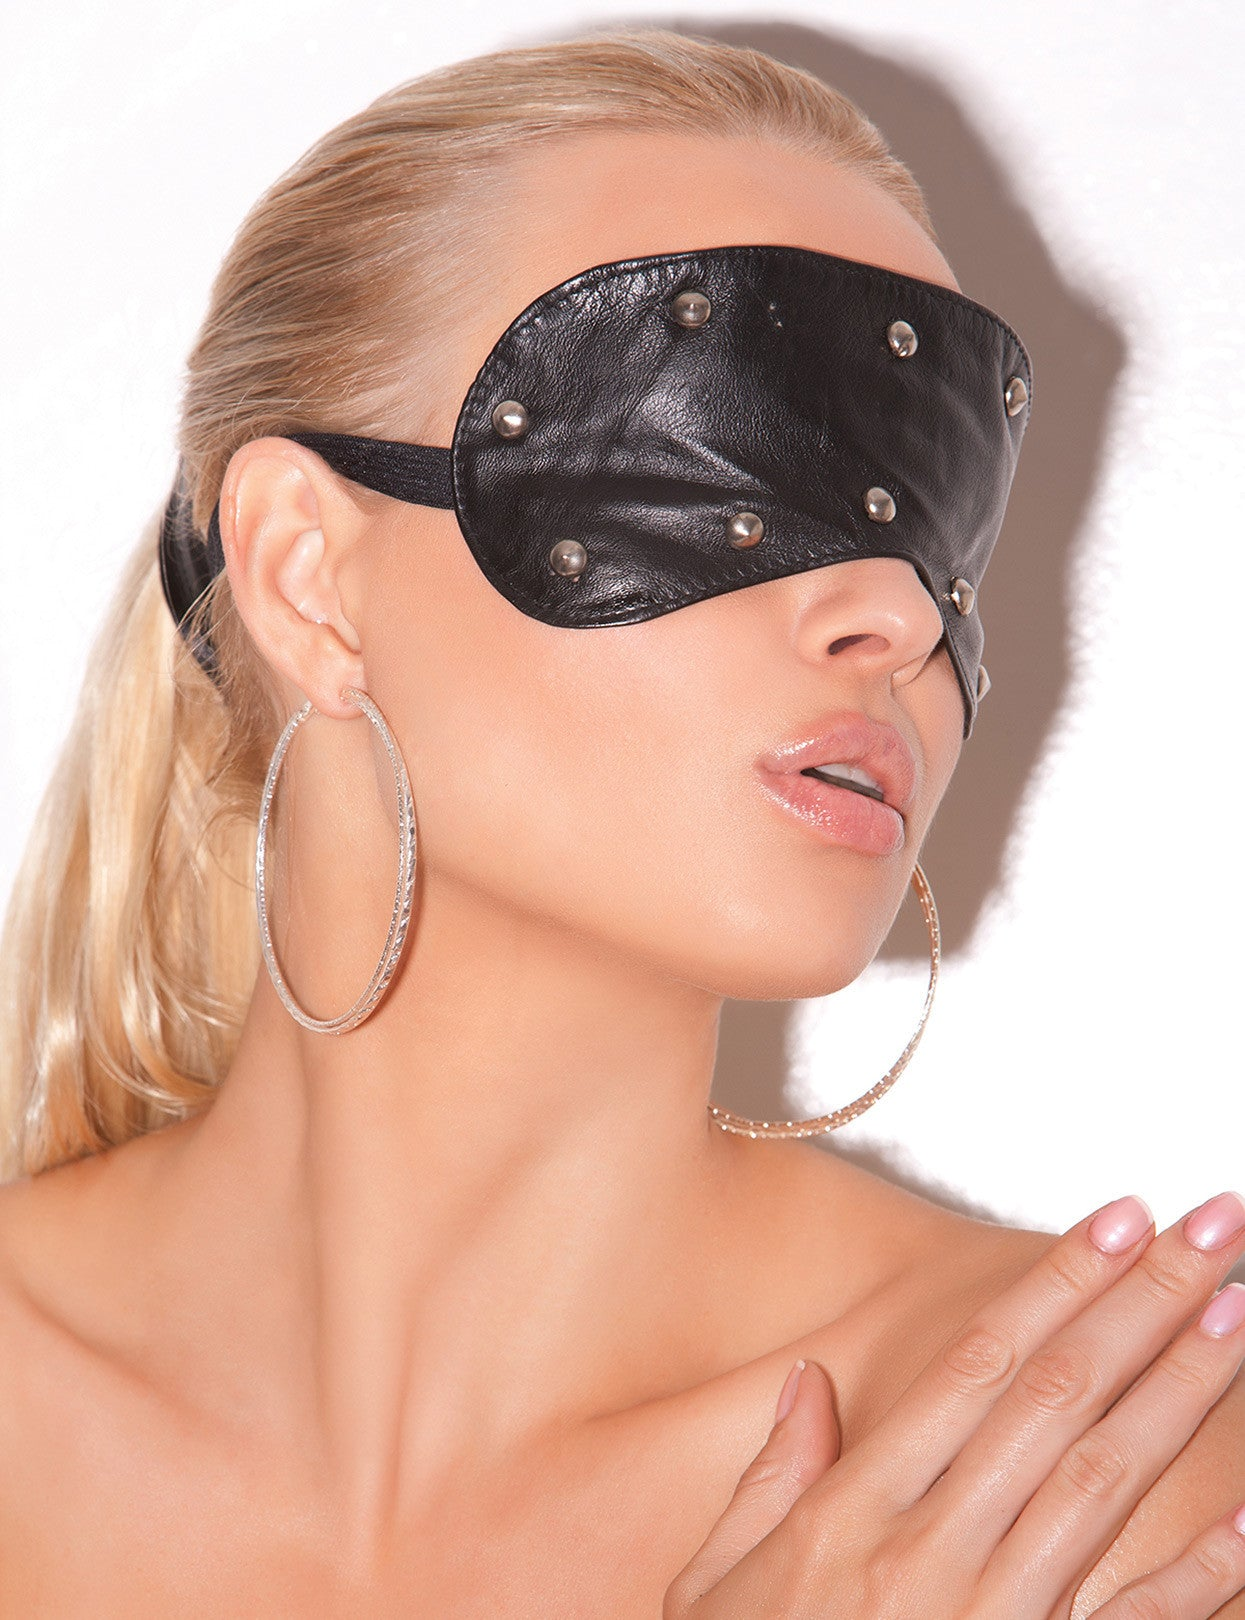 Studded Leather Blindfold - just damn sexy